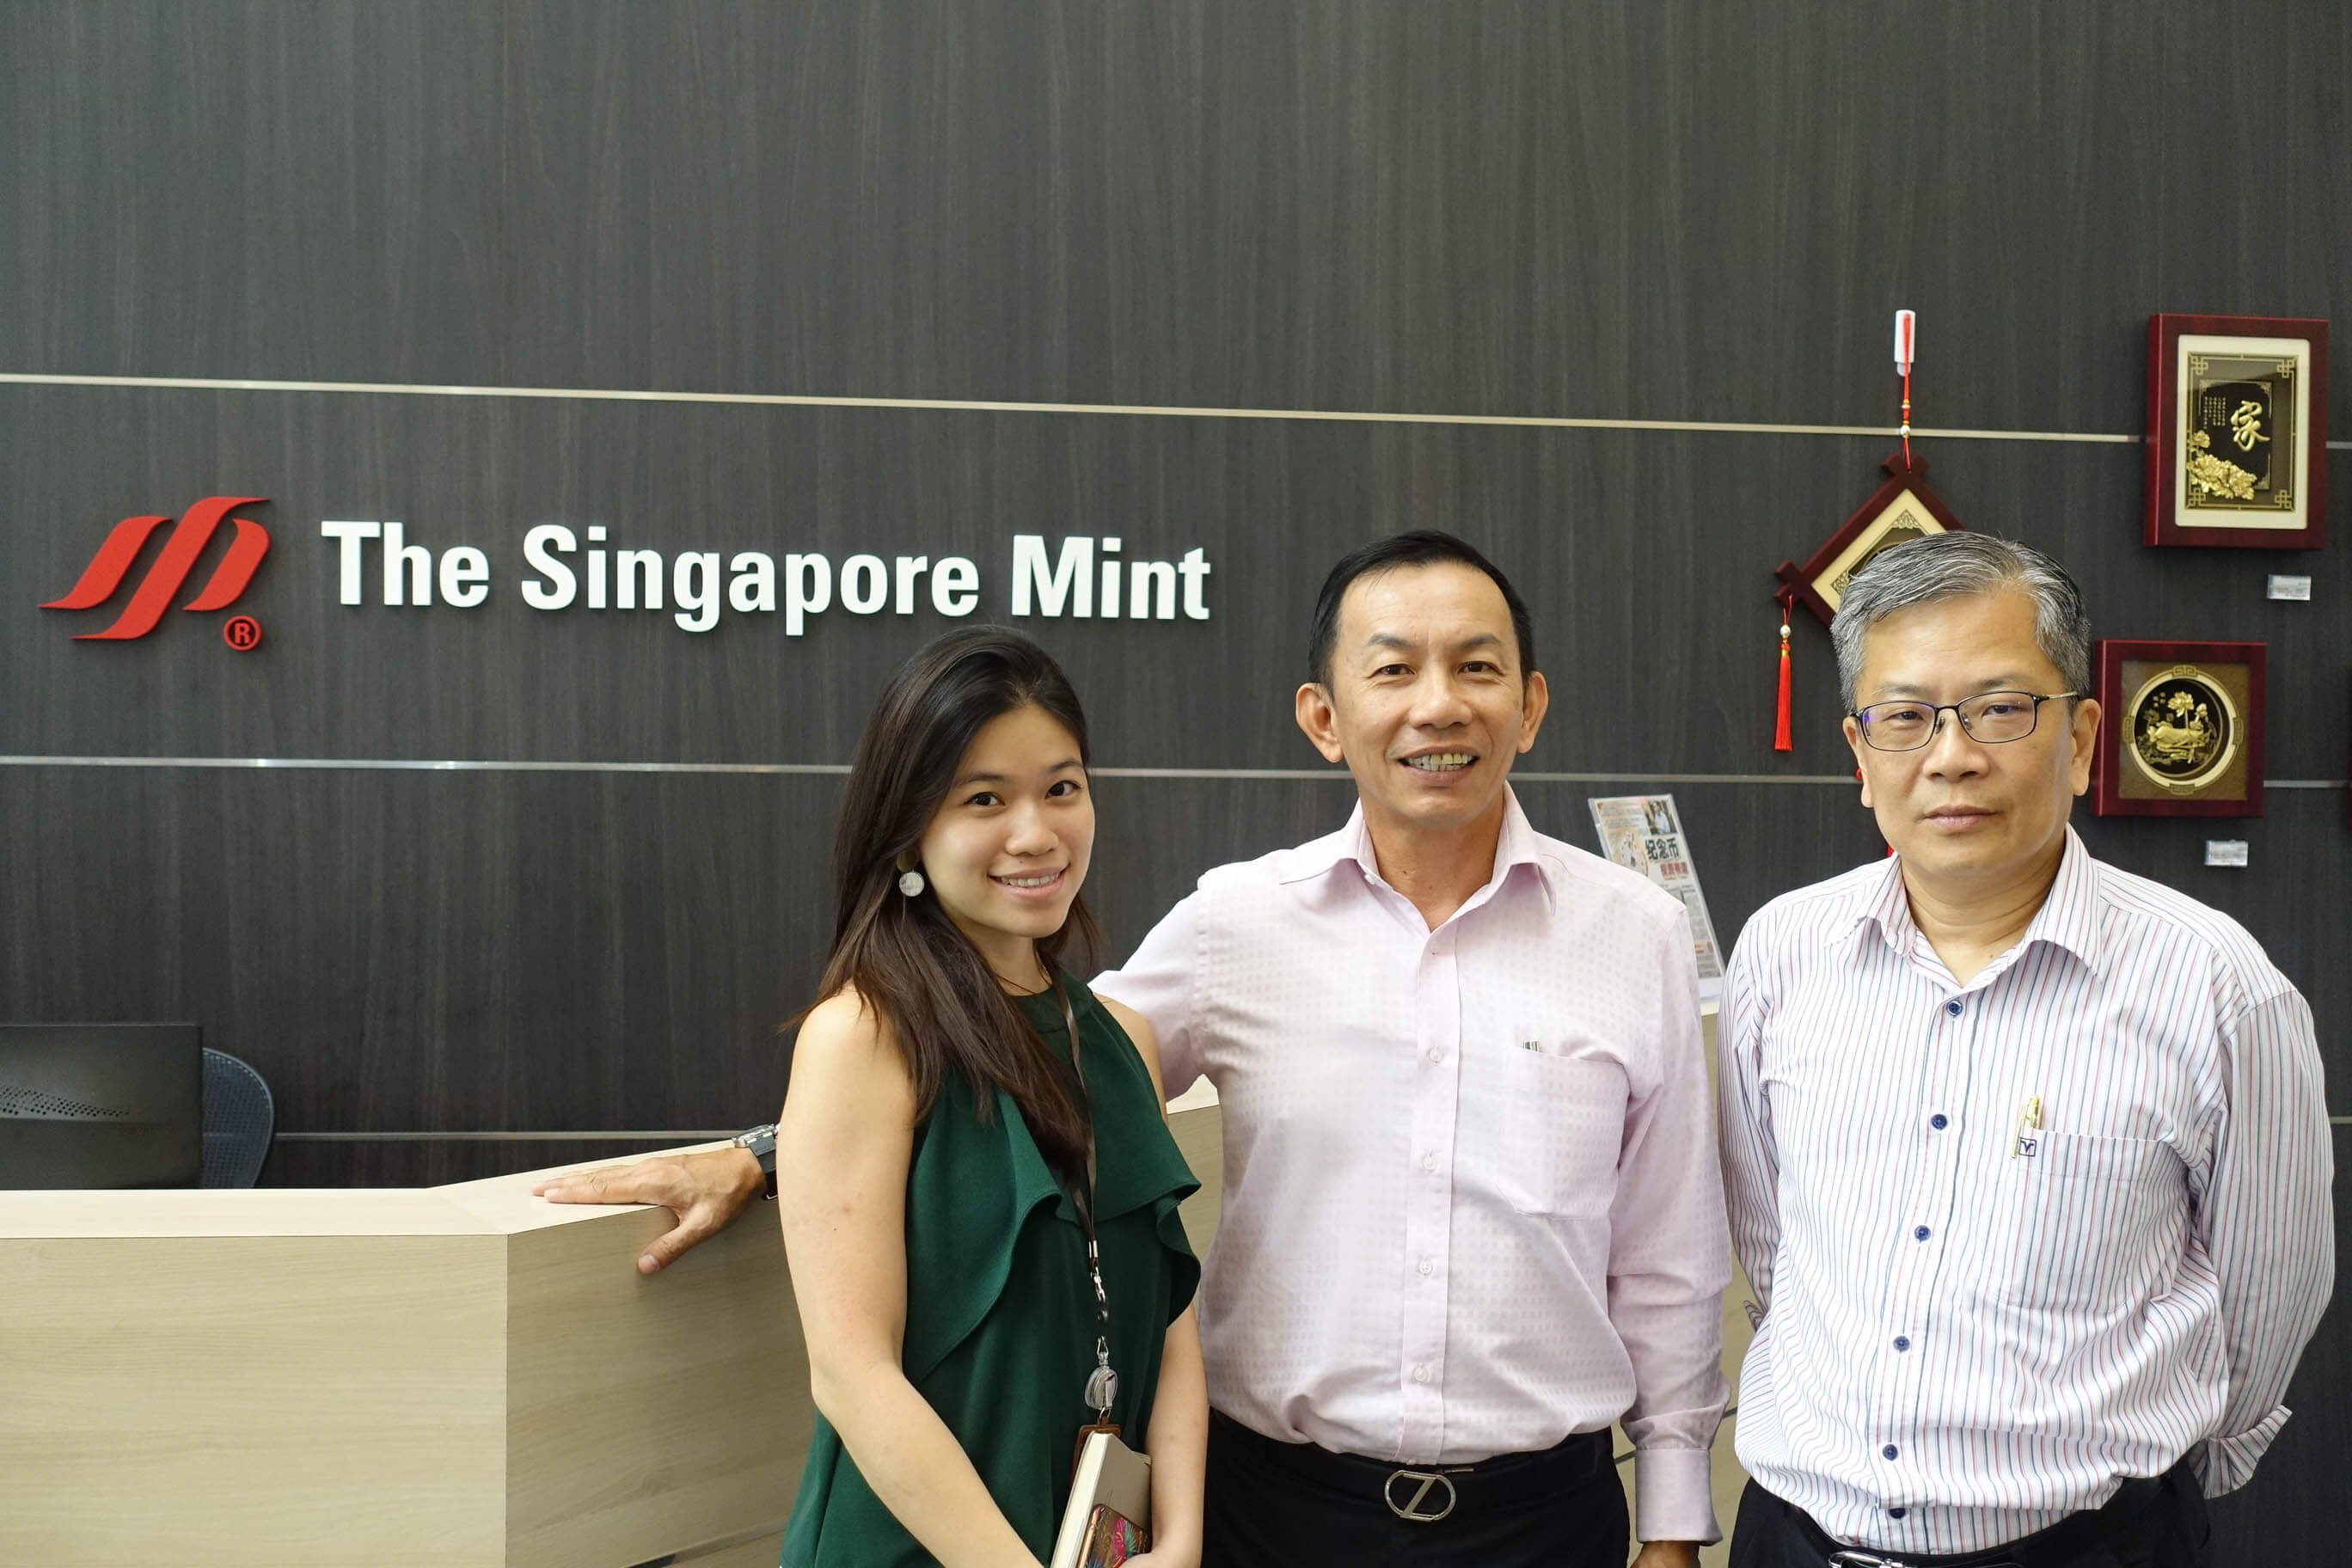 1ac4e06956f Many thanks to The Singapore Mint for the intensive and interesting guided  tour: from left to right Tan Ying Hui (Manager, Program Management), ...